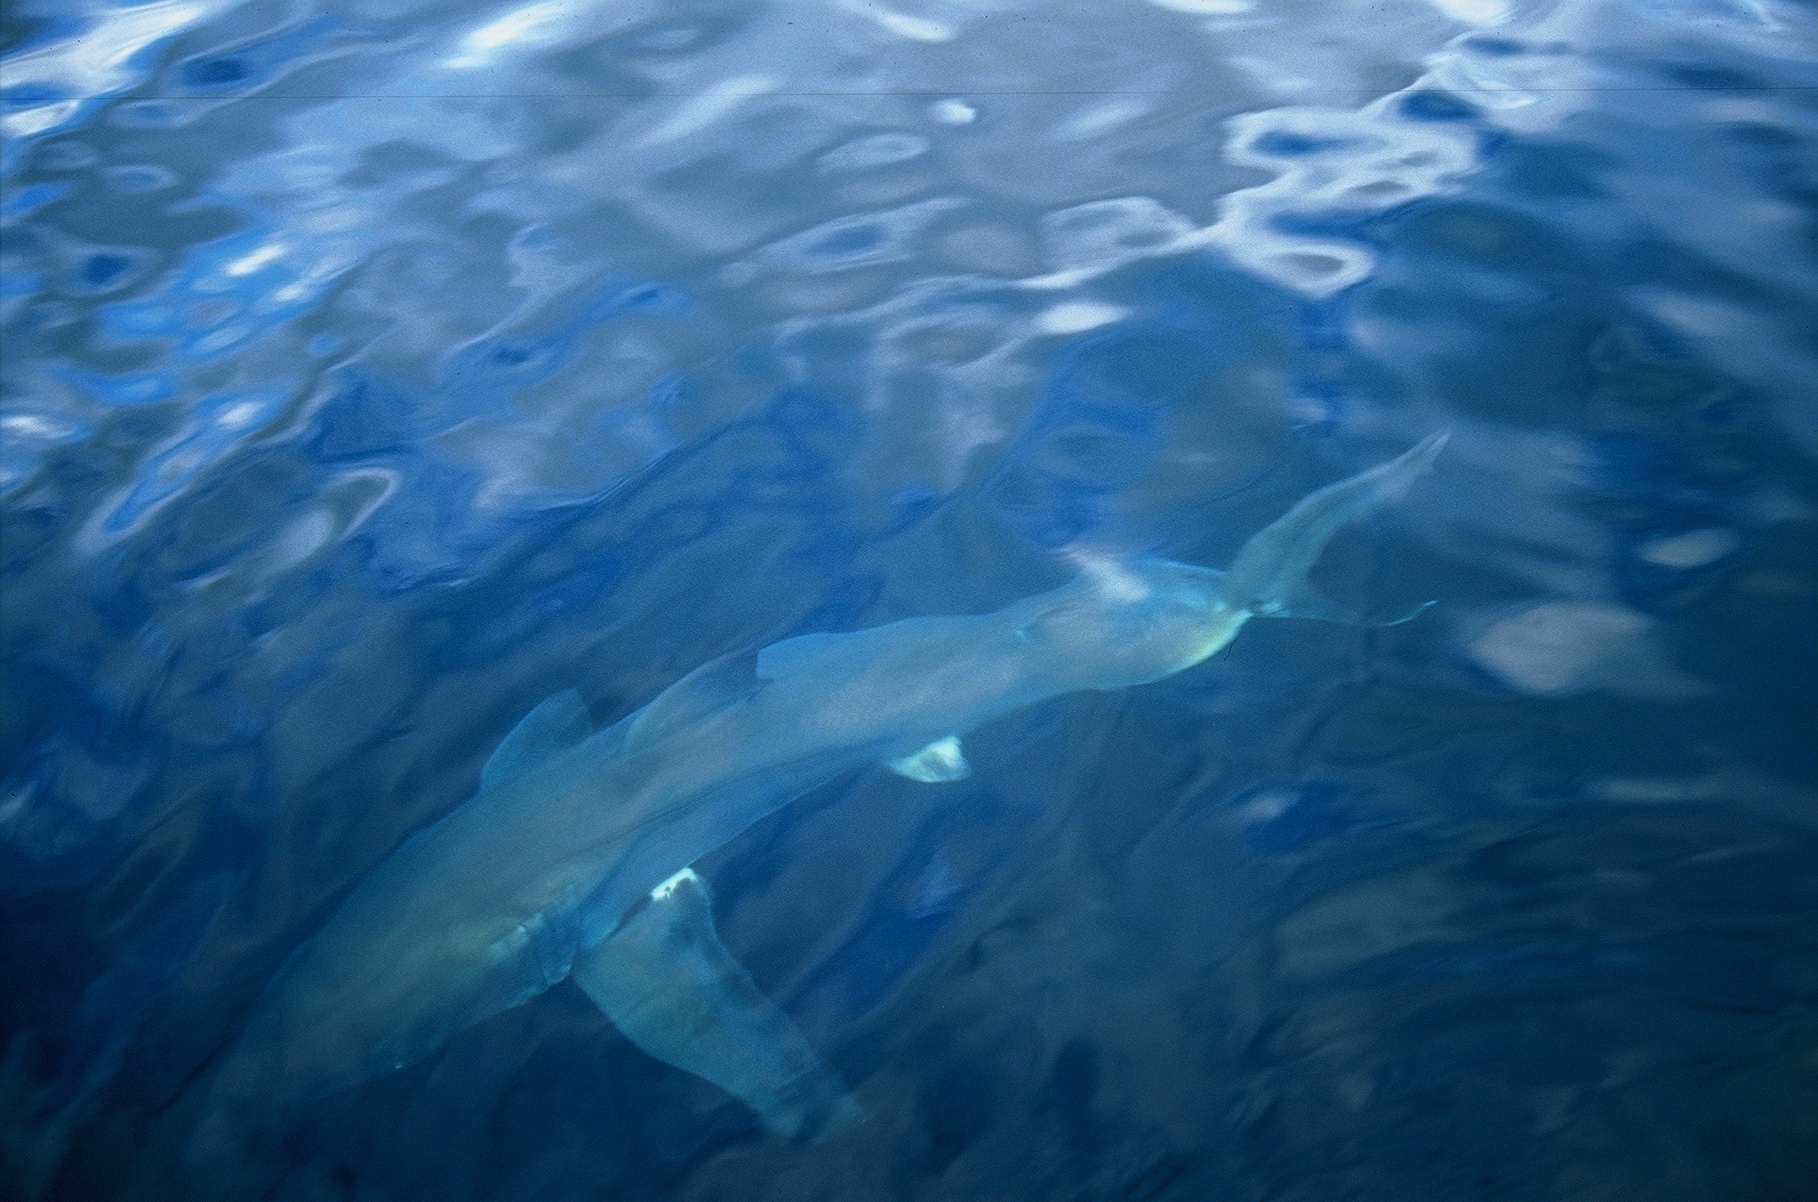 Australia: the face-to-face with a giant shark filmed by a waterproof camera